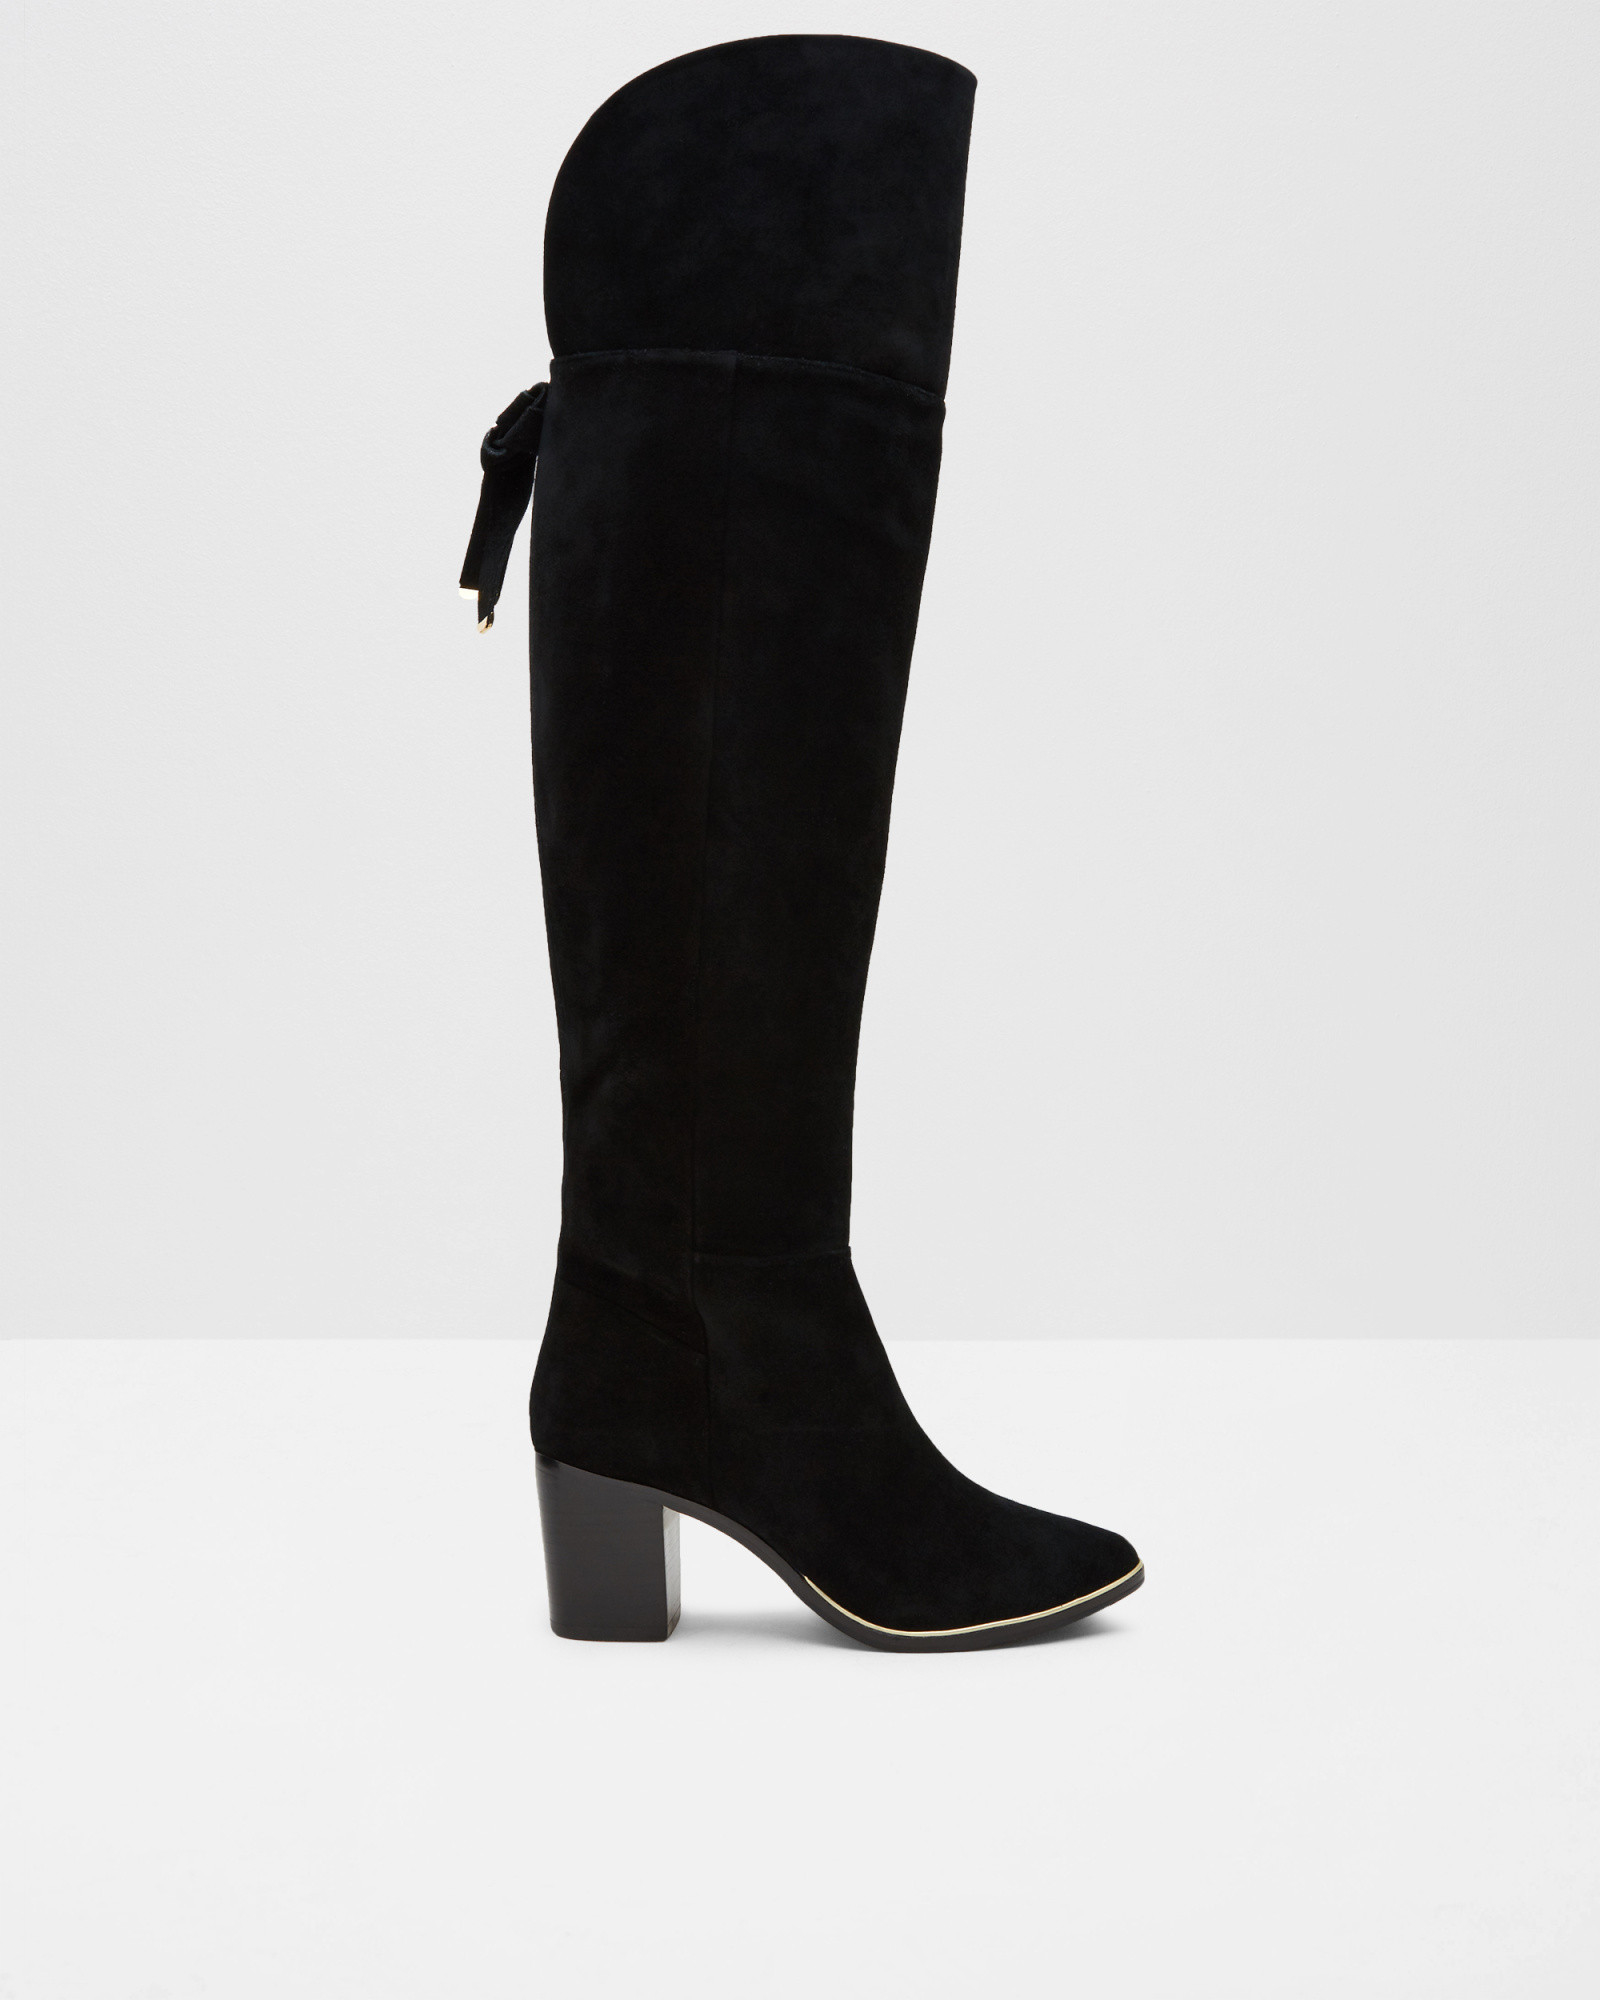 e81cc9d17 Lyst - Ted Baker Suede Over The Knee Boots in Black